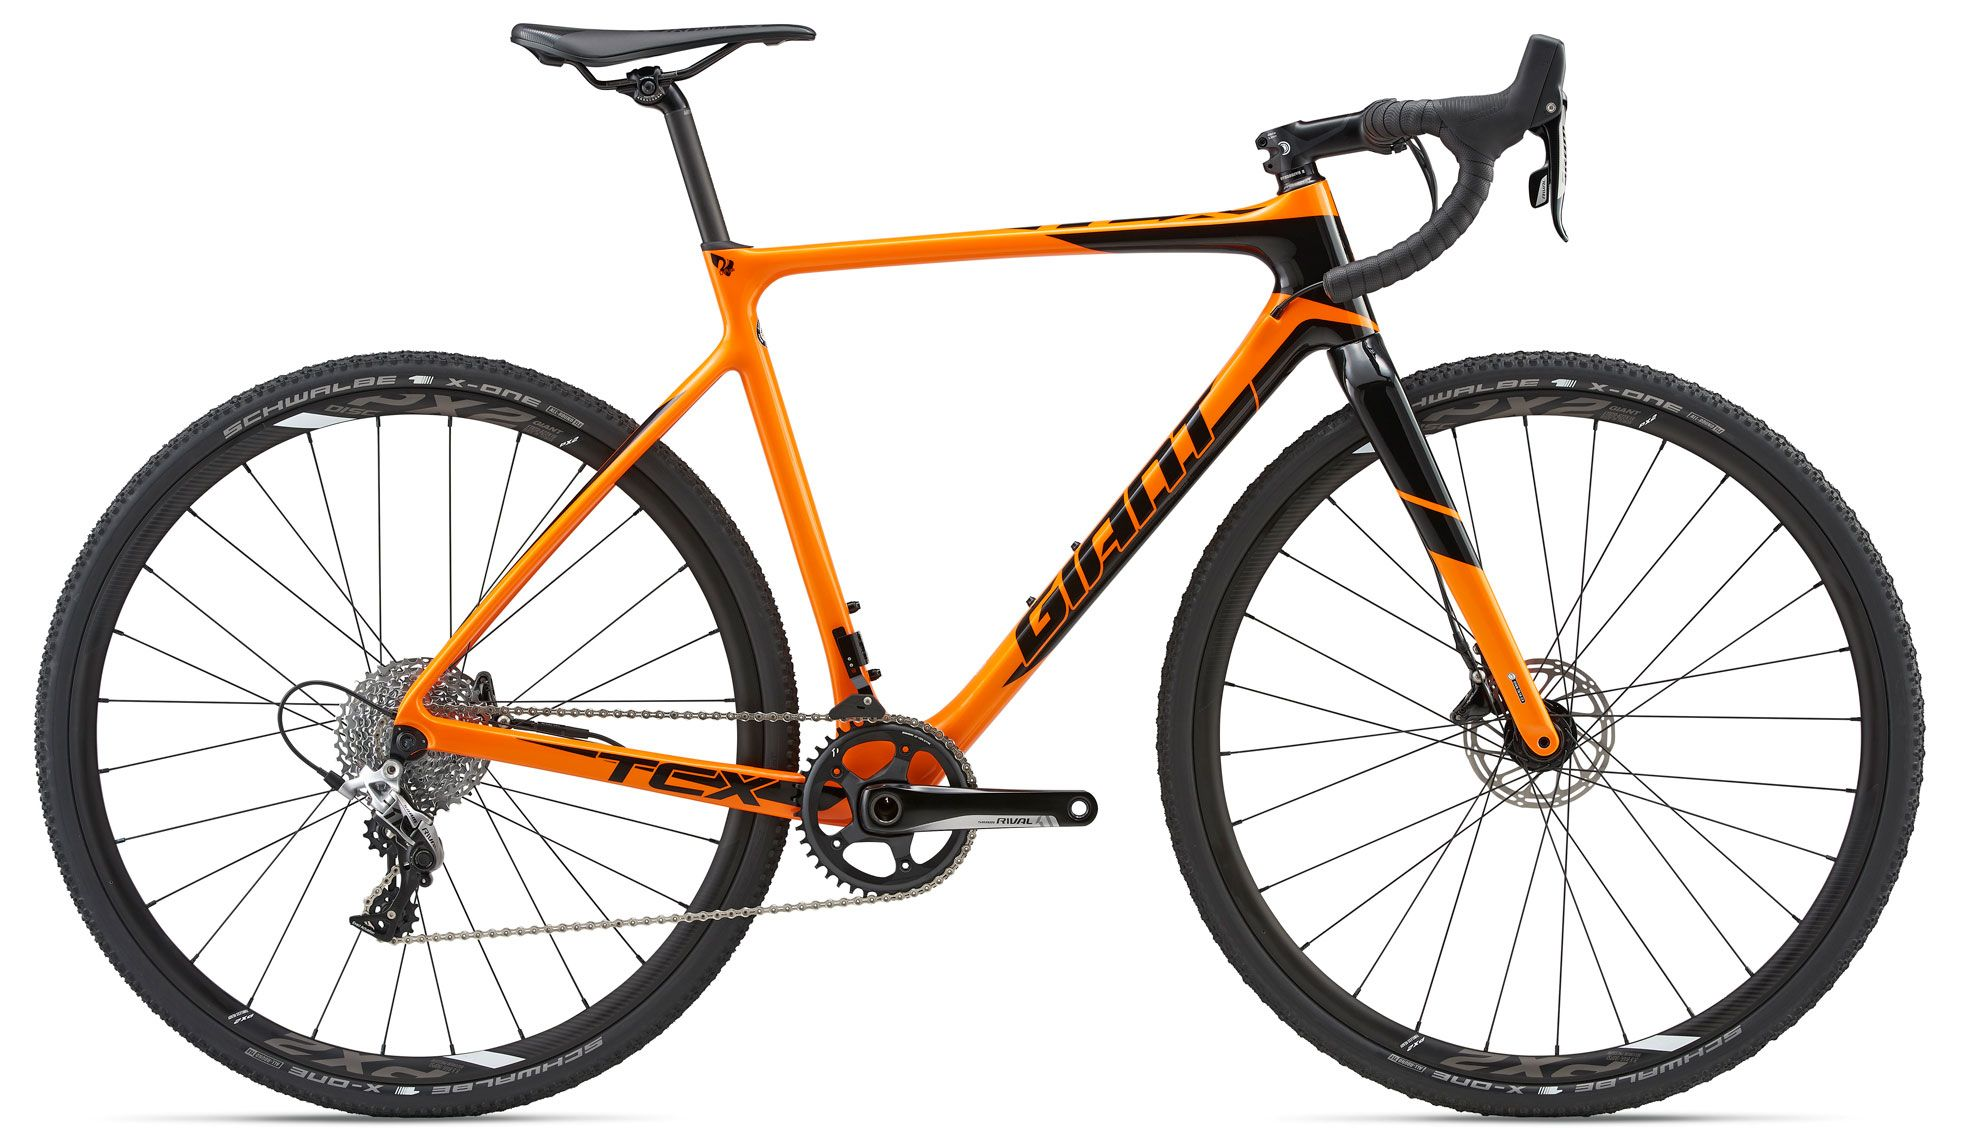 Велосипед Giant TCX Advanced Pro 2 2018 велосипед giant tcr advanced sl 2 2017